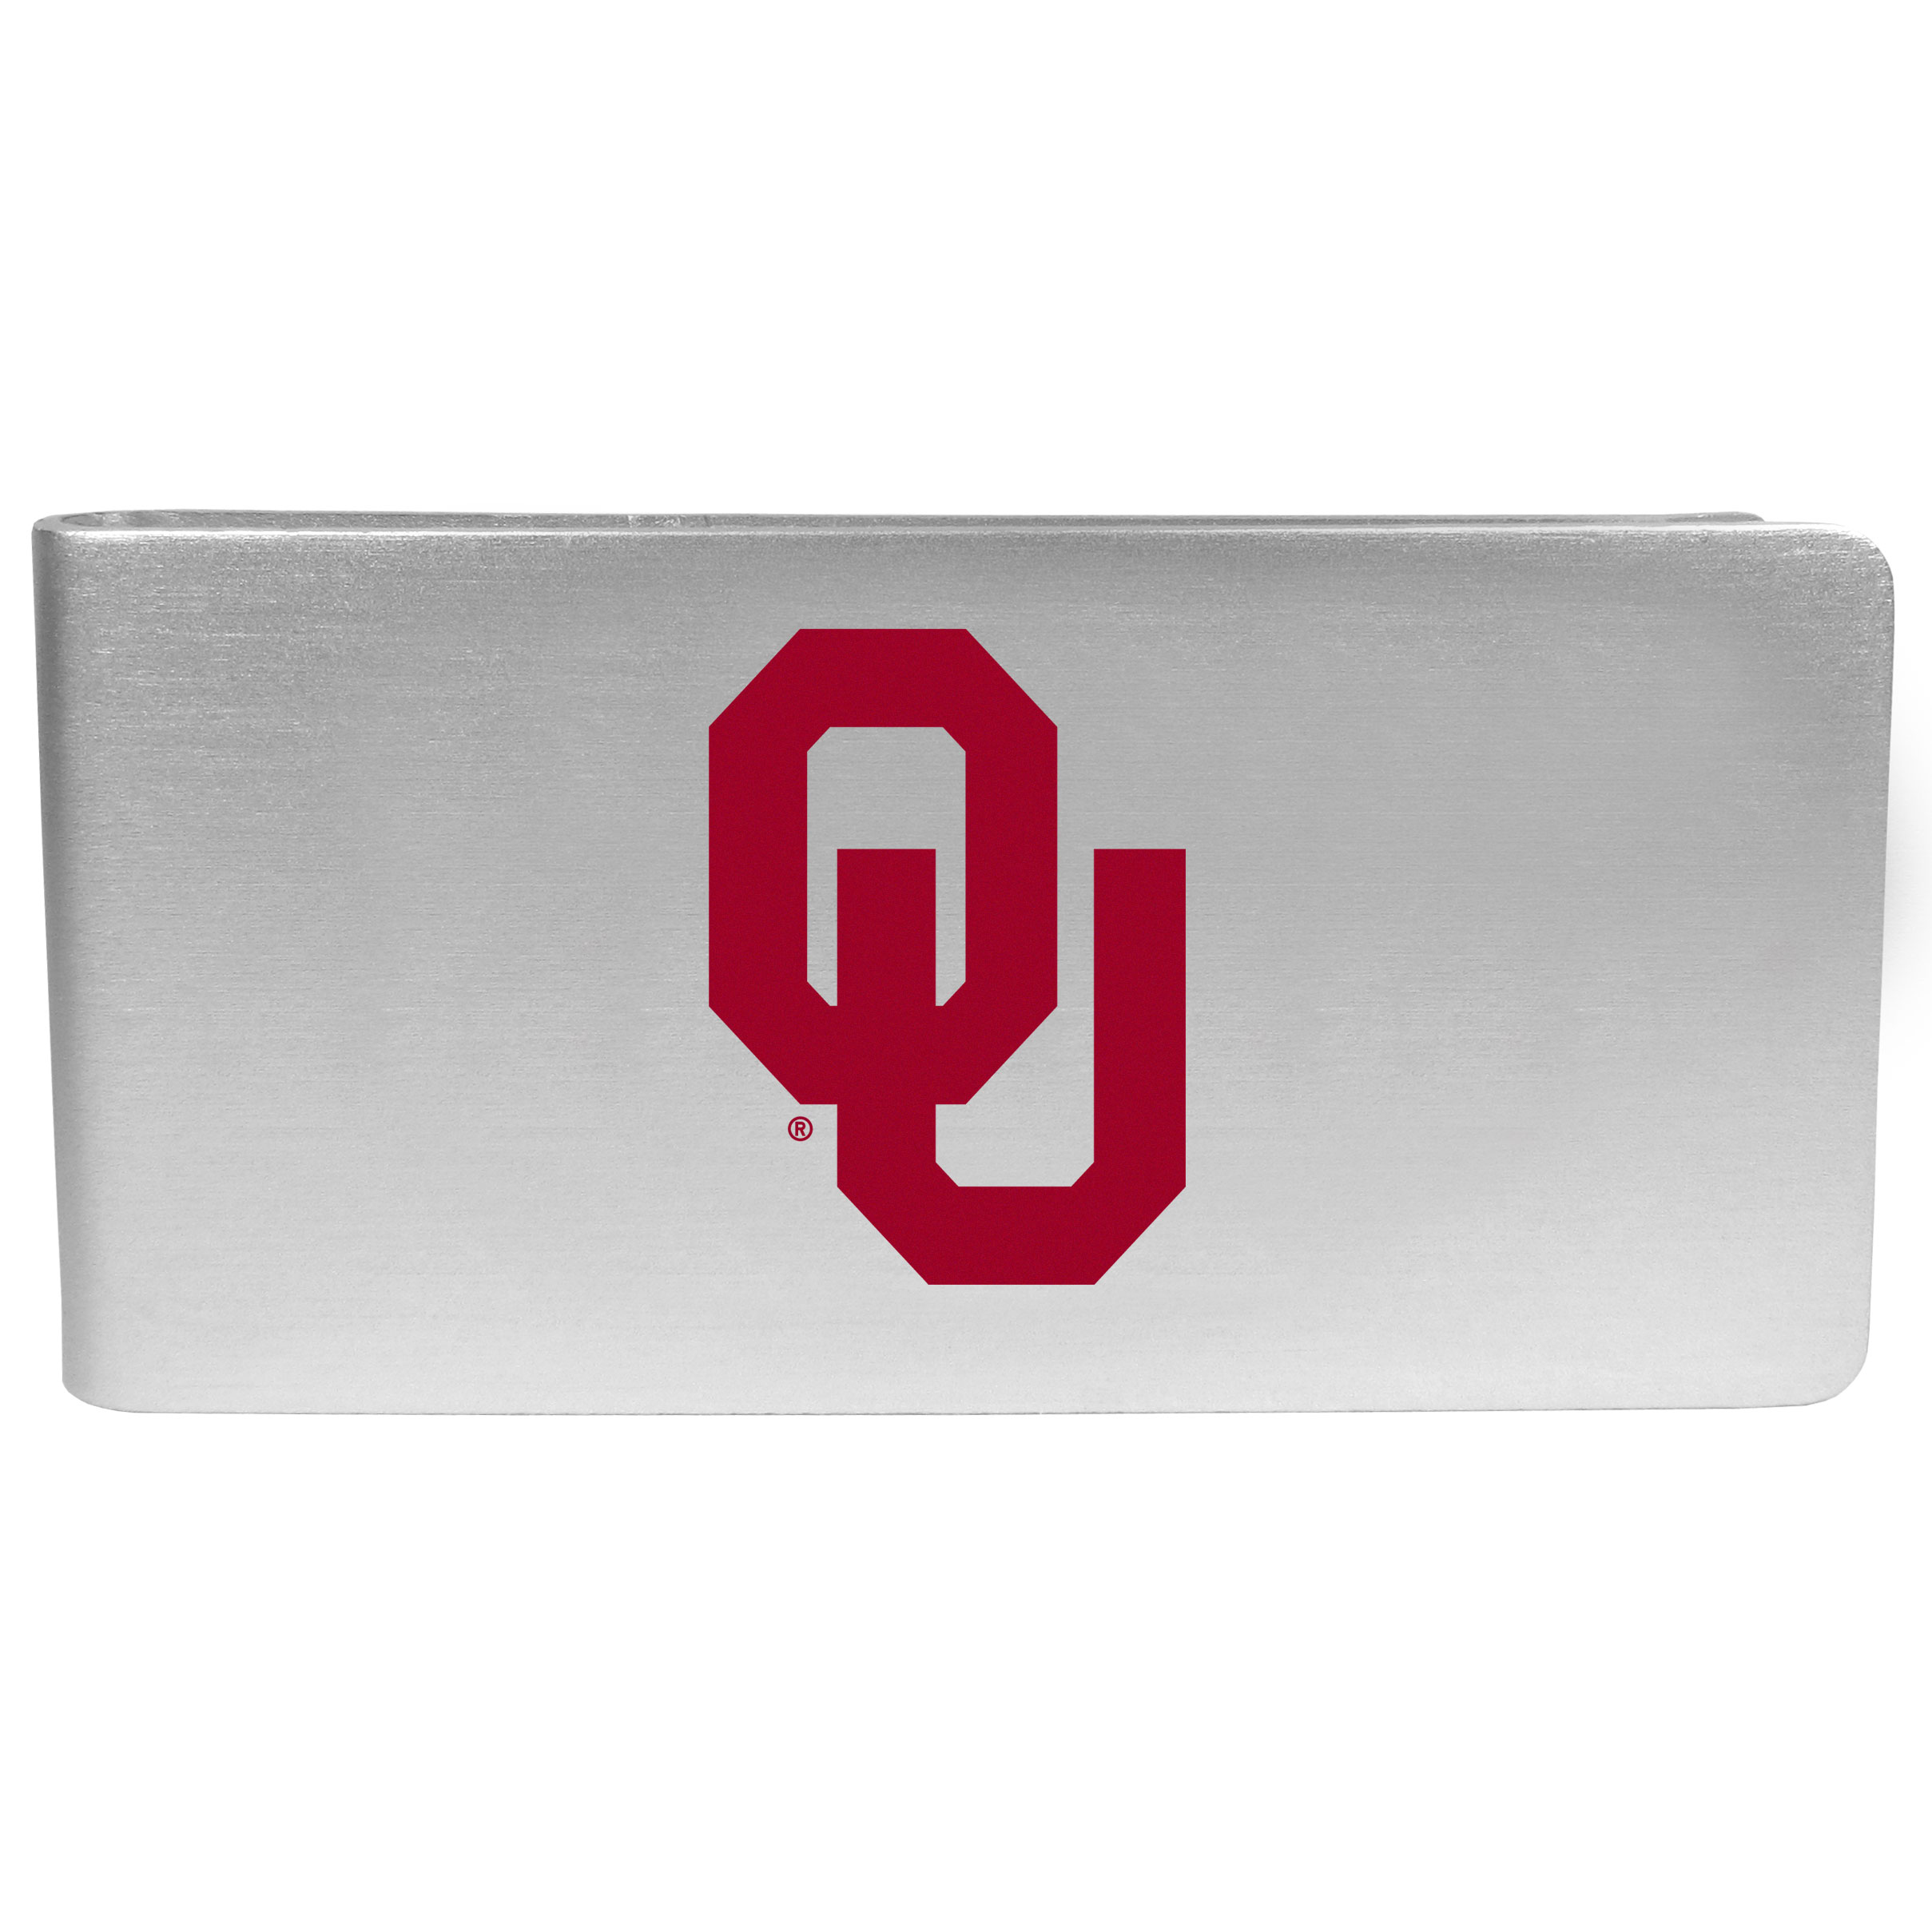 Oklahoma Sooners Logo Money Clip - Our brushed metal money clip has classic style and functionality. The attractive clip features the Oklahoma Sooners logo expertly printed on front.